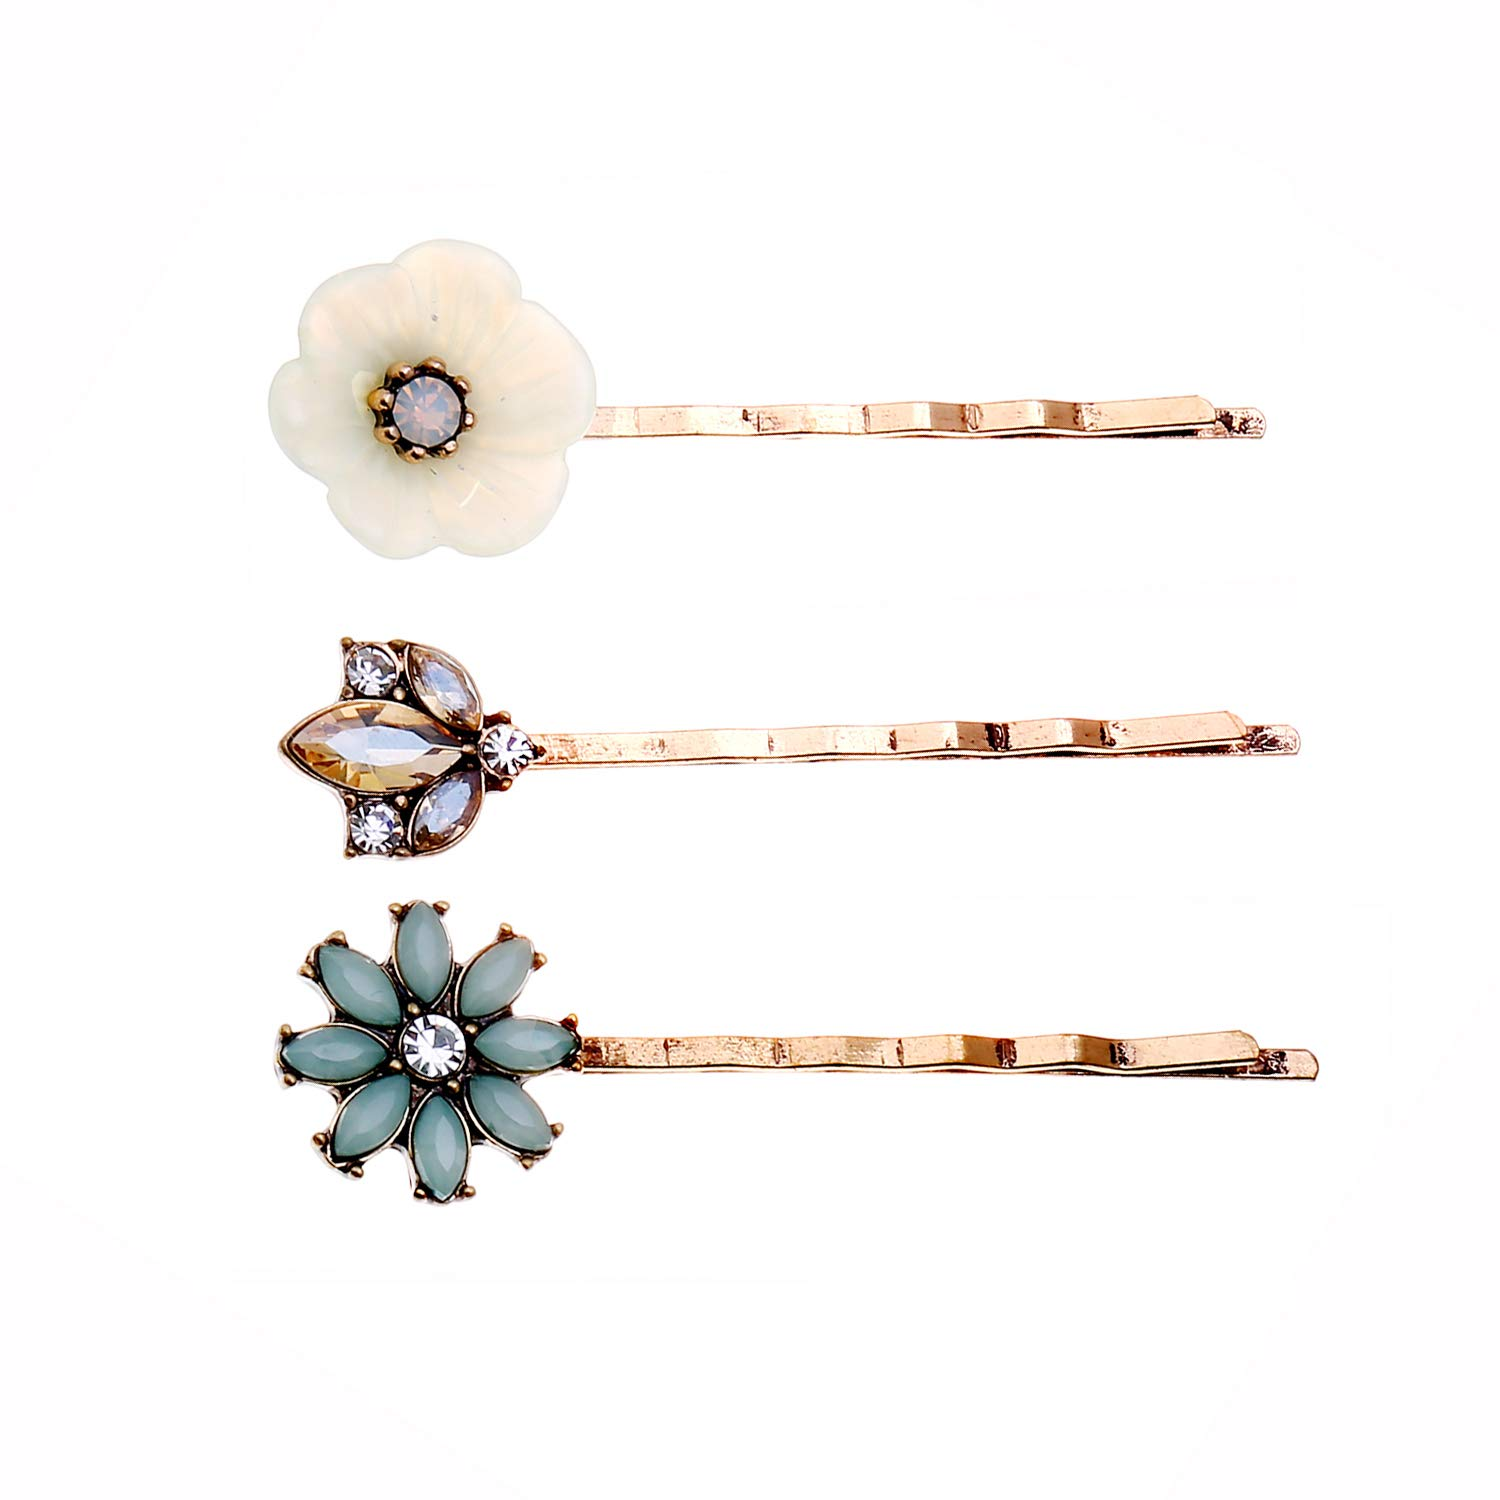 Vintage Crystal Rhinestone Hair Pins 3 Pieces Crystal Diamond Flower Hair Clips Set for Women